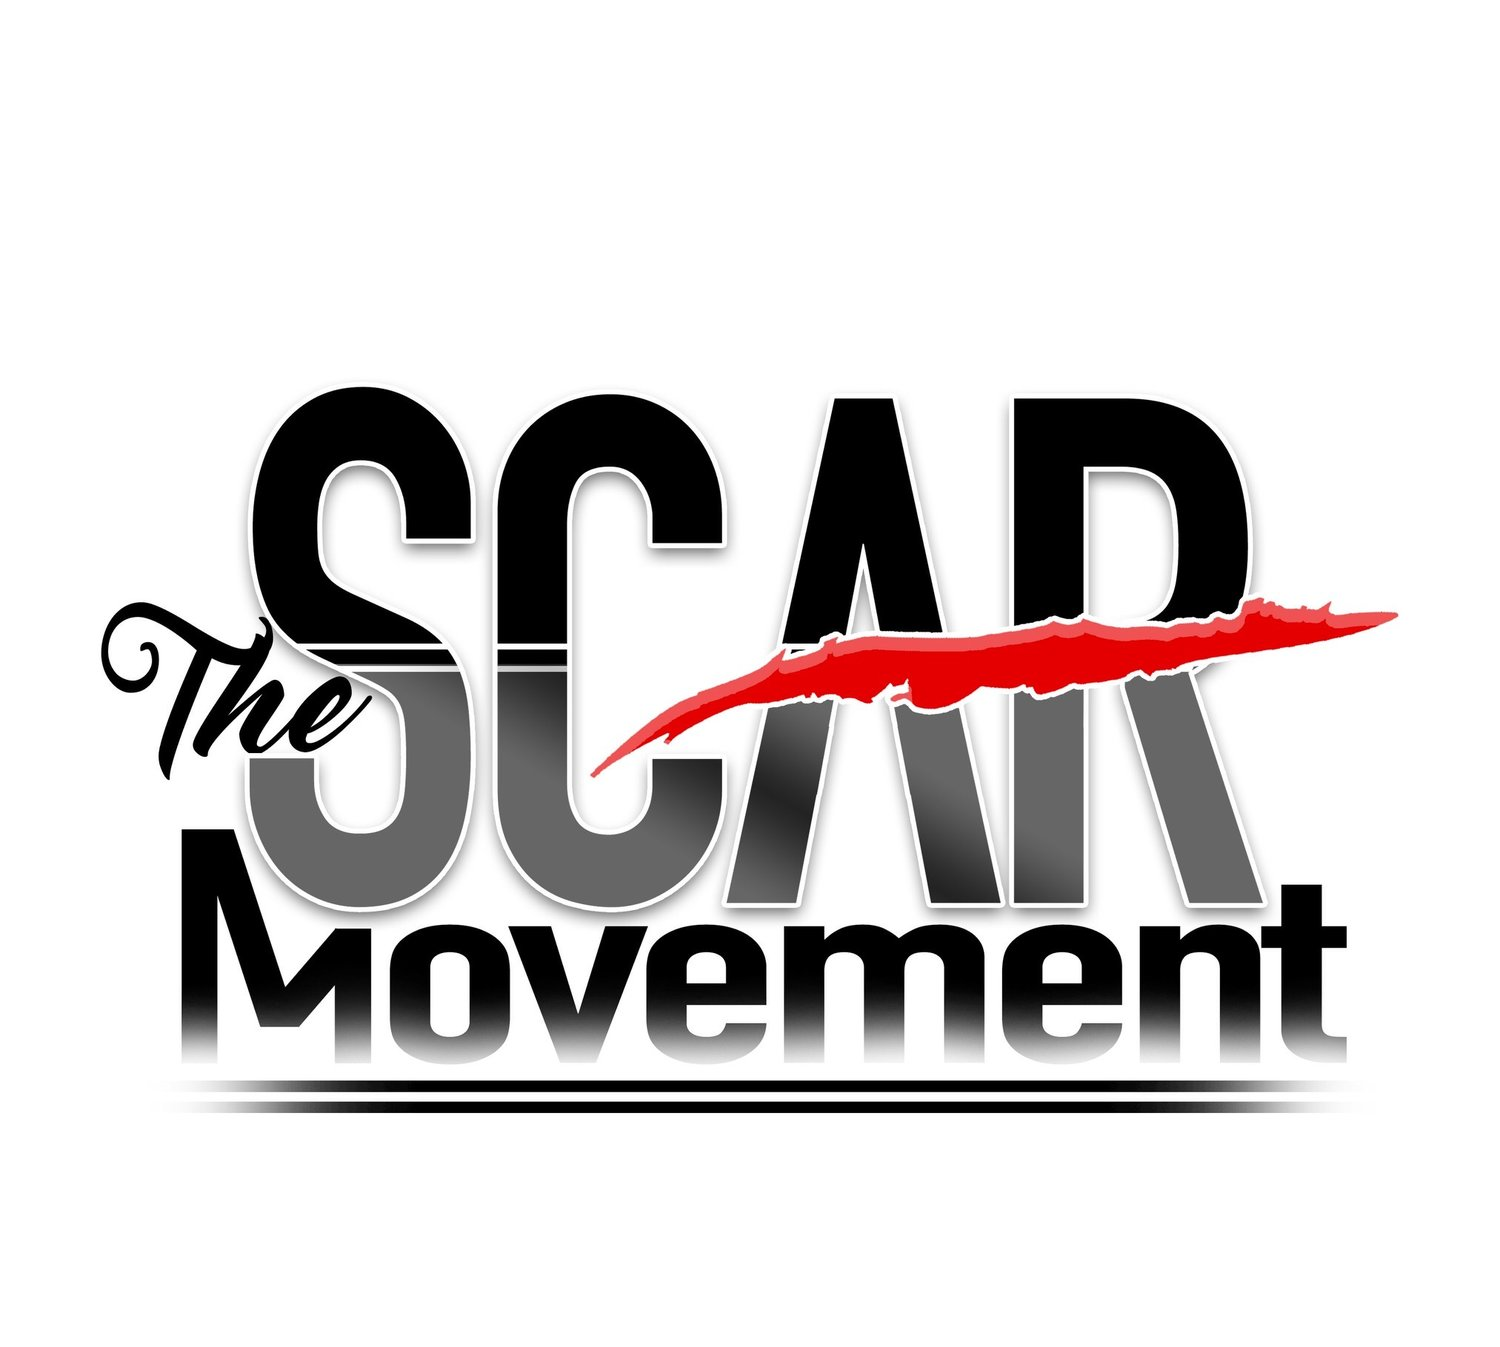 The Scar Movement